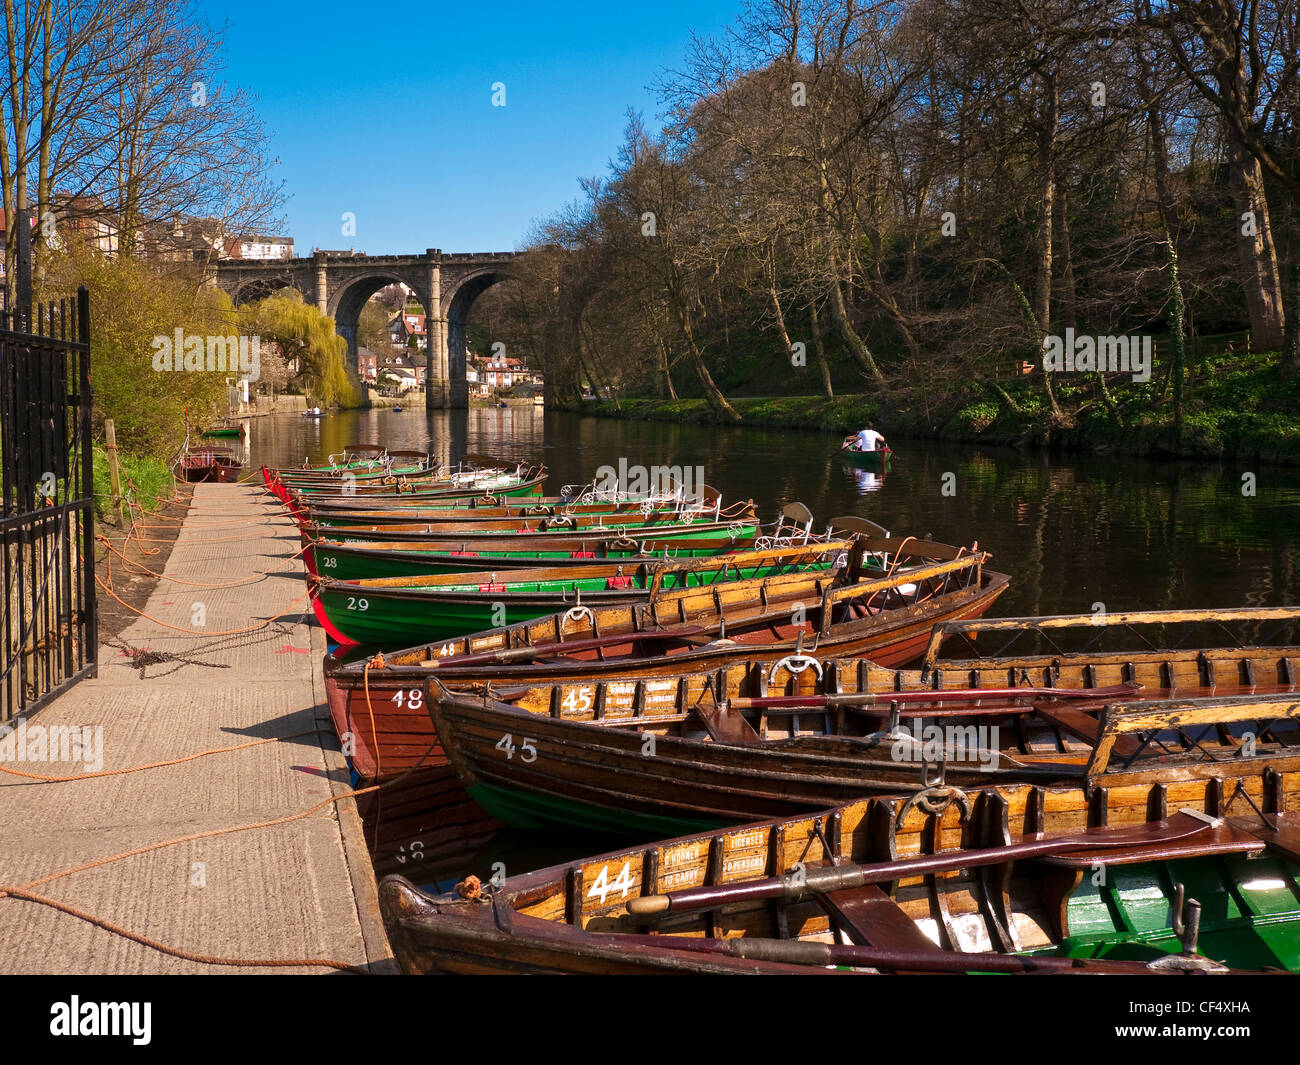 Rowing boats for hire on the River Nidd. The Knaresborough Viaduct, built in 1851 to carry Victorian rail traffic - Stock Image